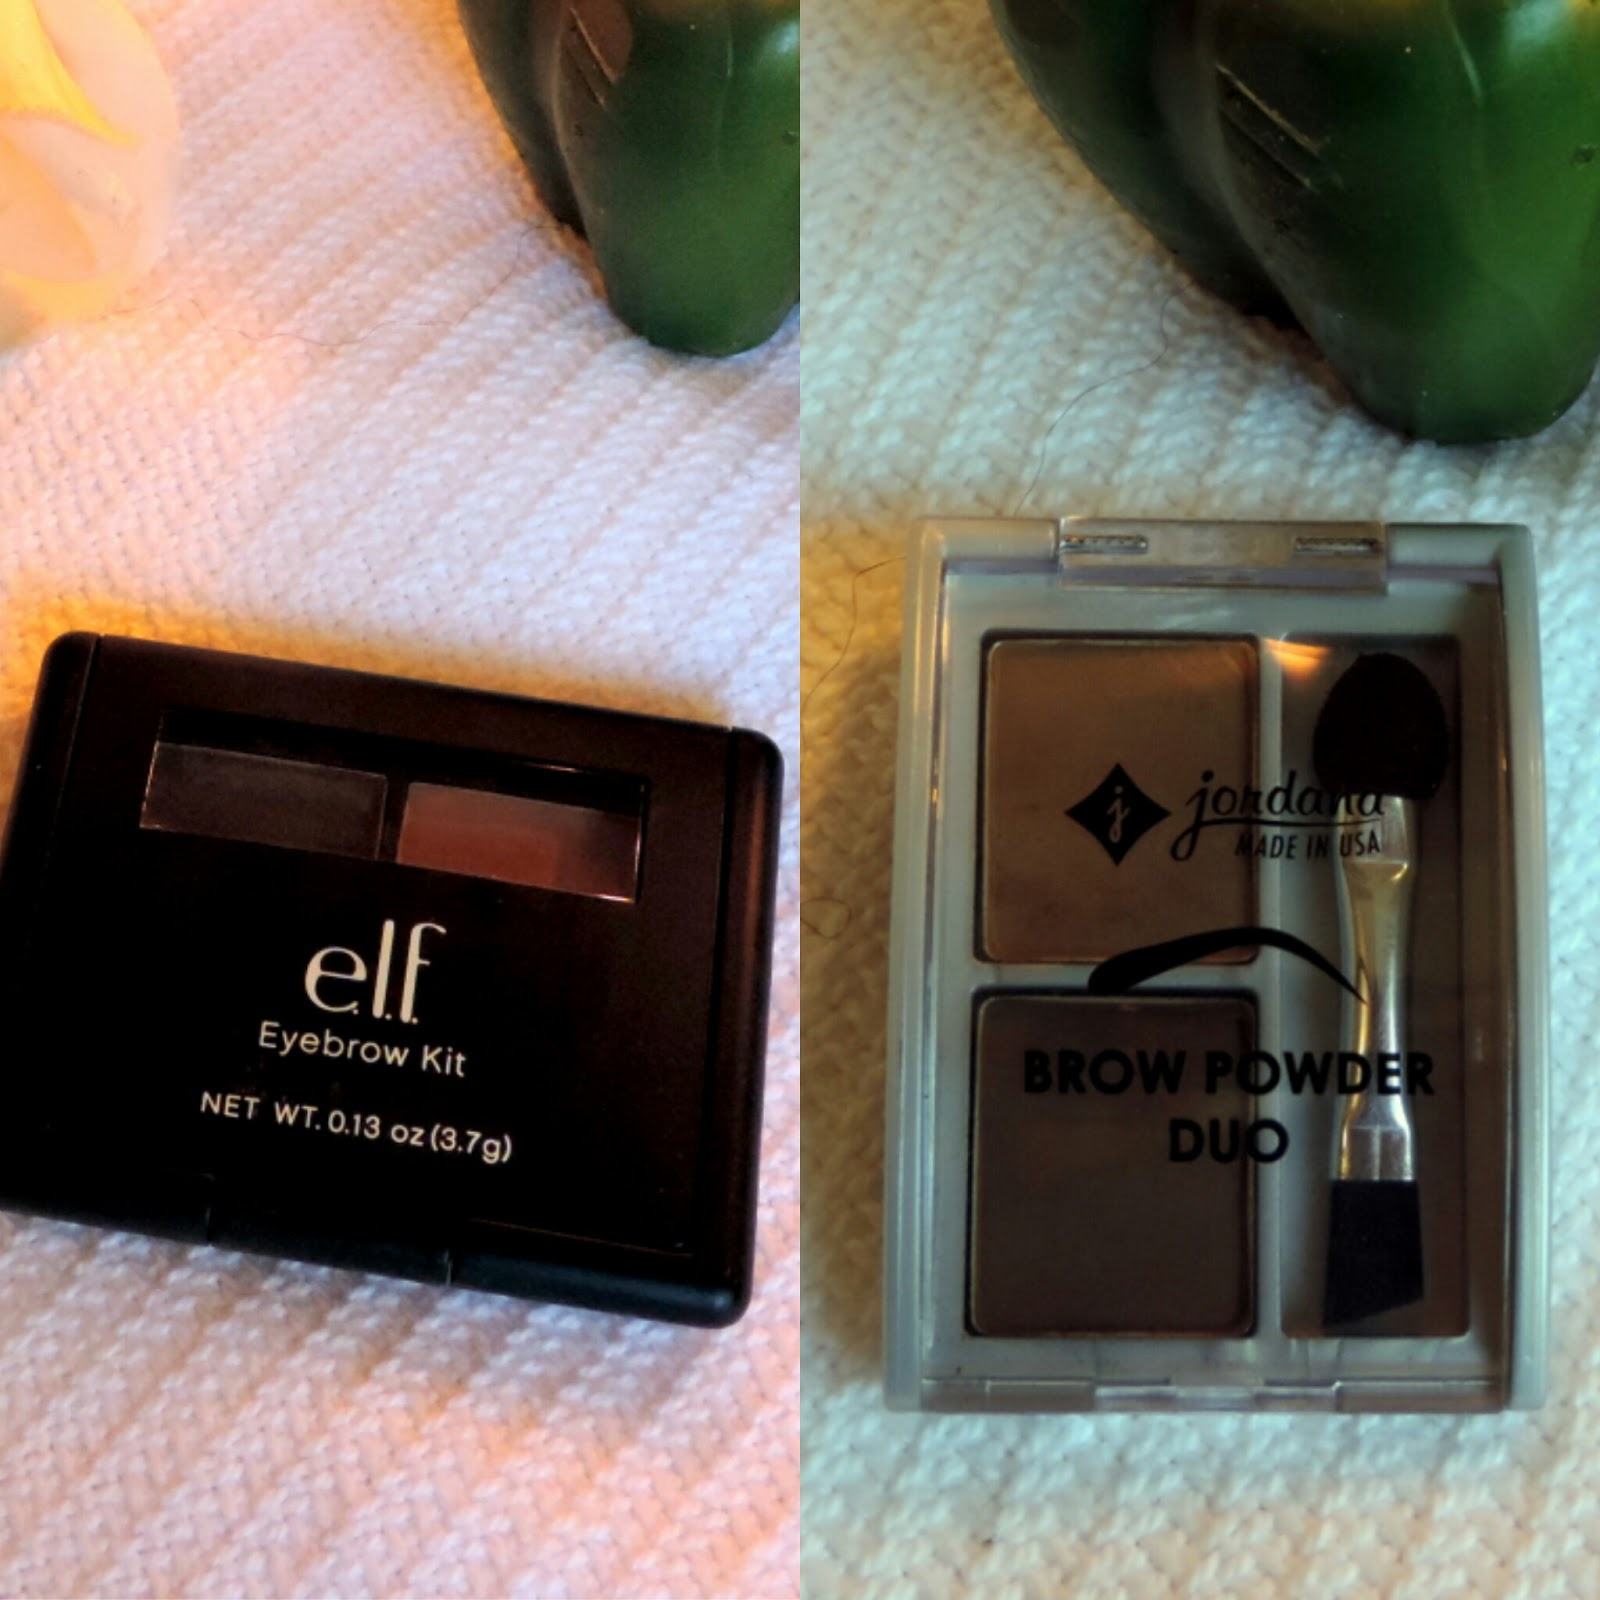 elf eyebrow kit medium vs dark. i thought about starting a series sharing my thoughts on two beauty products that serve the same purpose, one more expensive than other and ultimately elf eyebrow kit medium vs dark